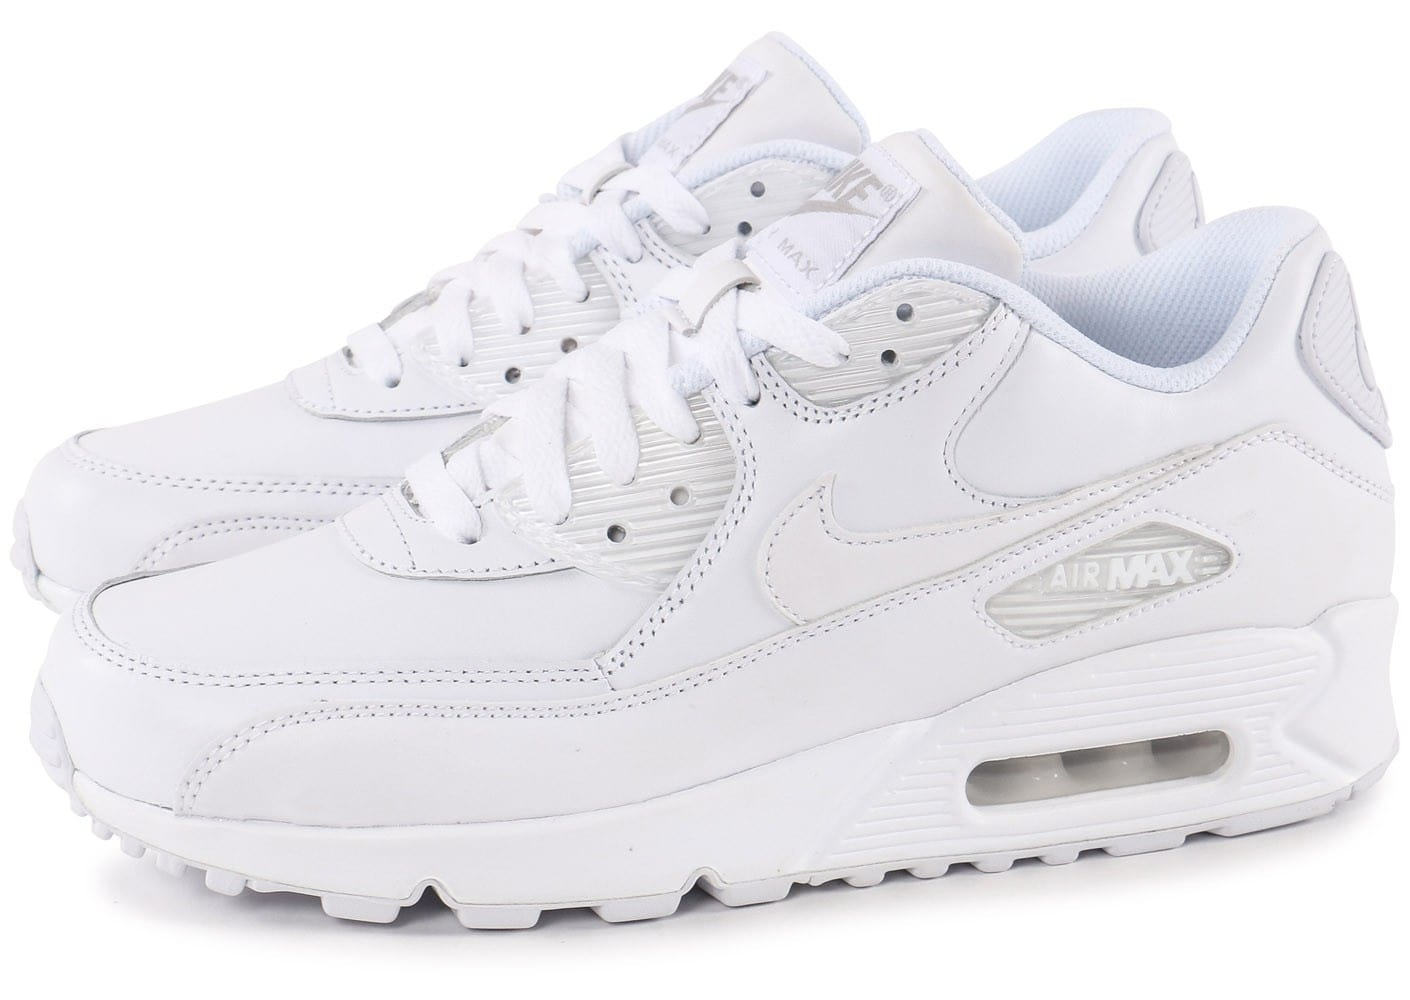 Promotion de groupe air max leather blanc.Dédié à économiser